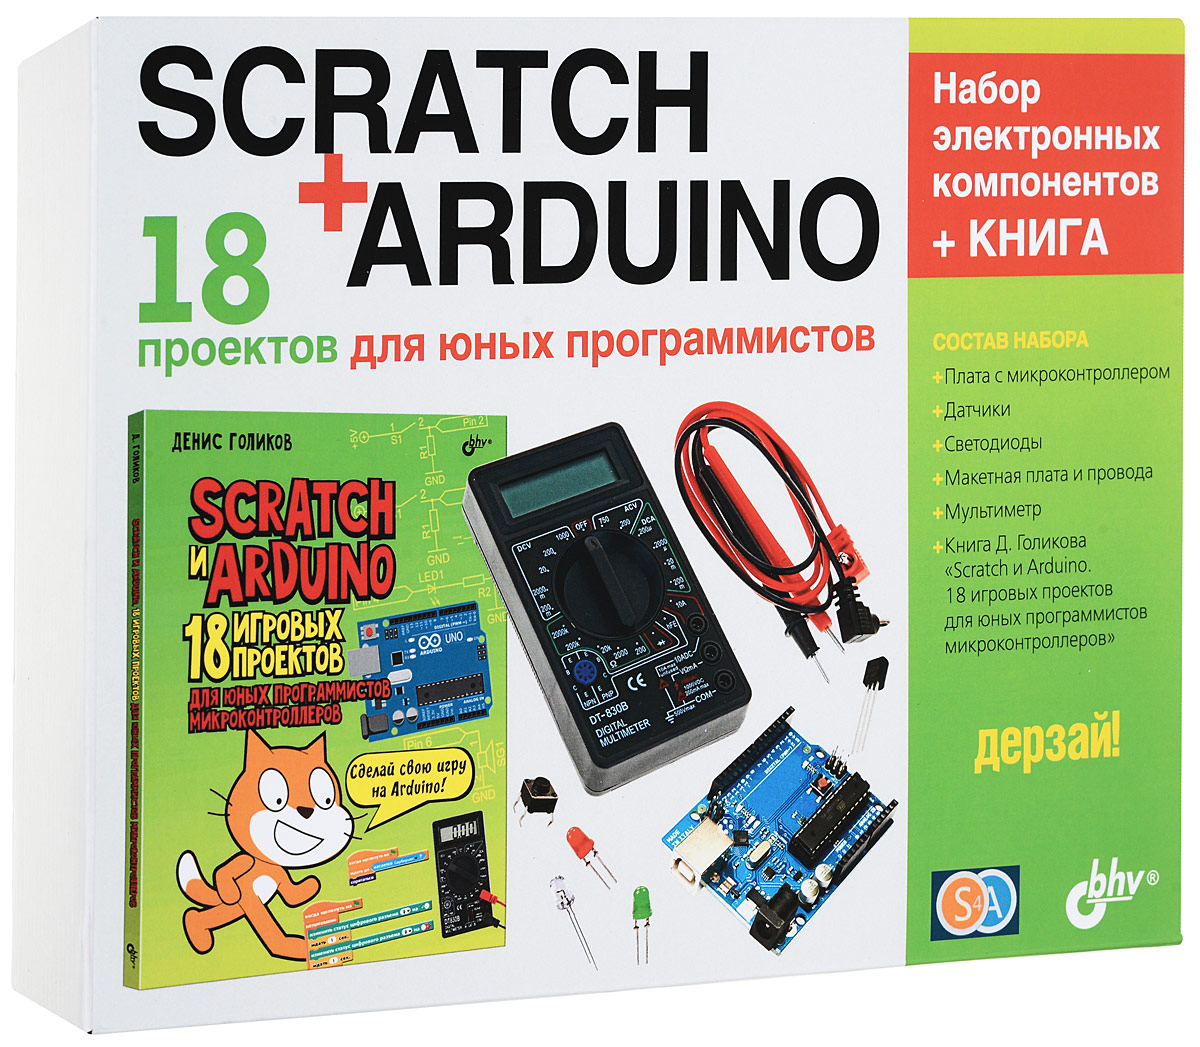 Д. Голиков Дерзай! Наборы по электронике. Scratch+Arduino. 18 проектов для юных программистов + КНИГА prototyping shield protoshield mini breadboard for arduino works with official arduino boards